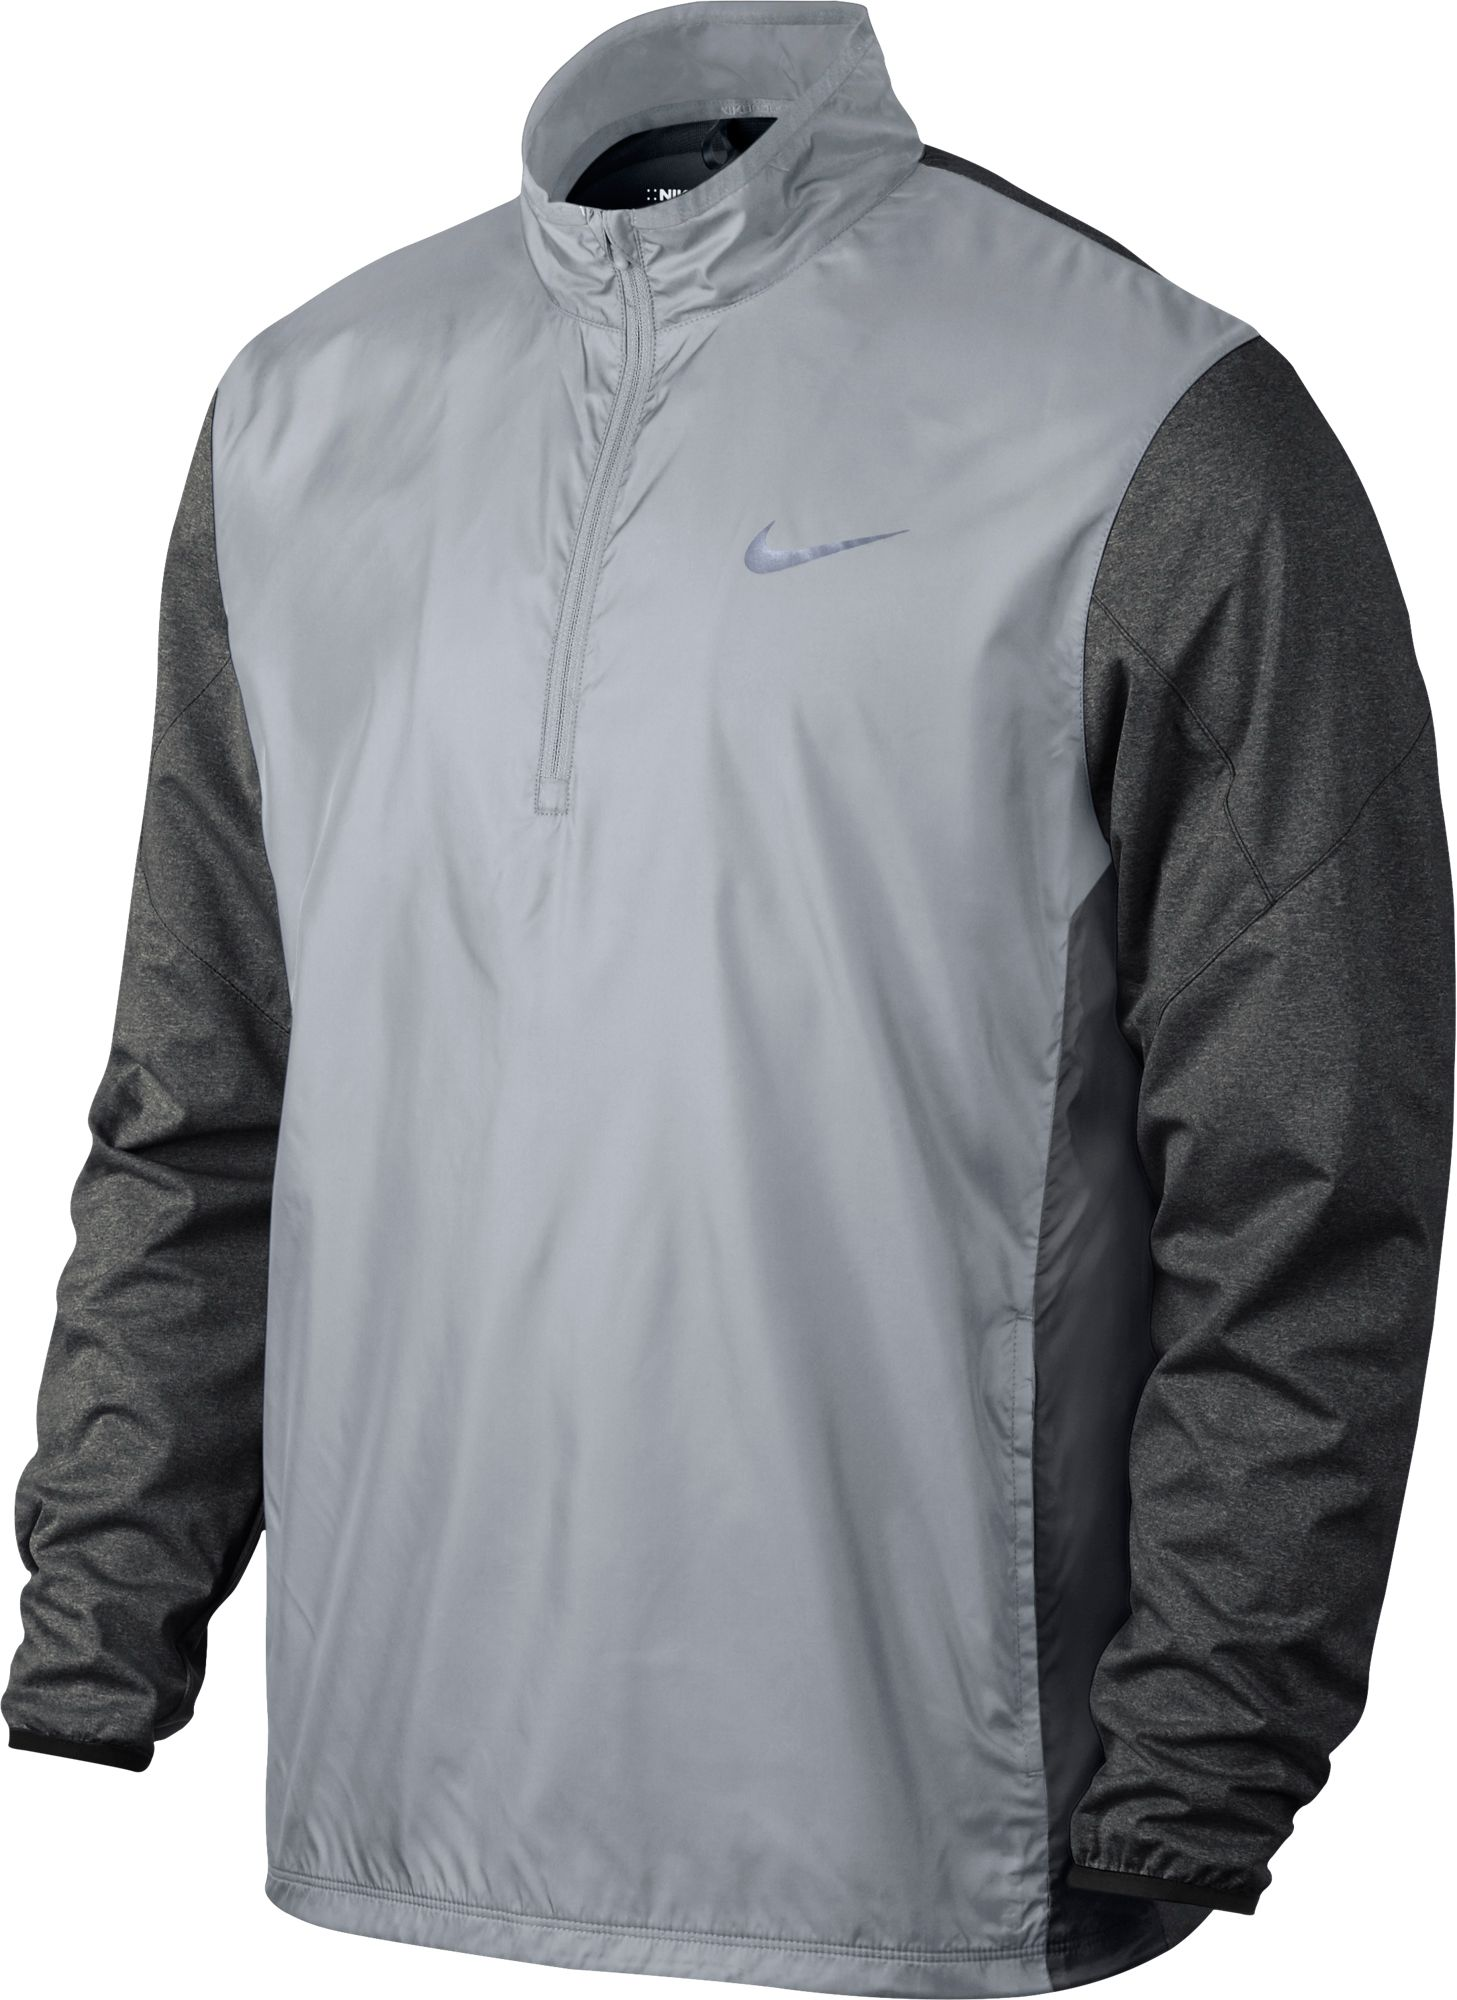 Nike Men's Golf Half-Zip Shield Golf Pullover | DICK'S Sporting Goods